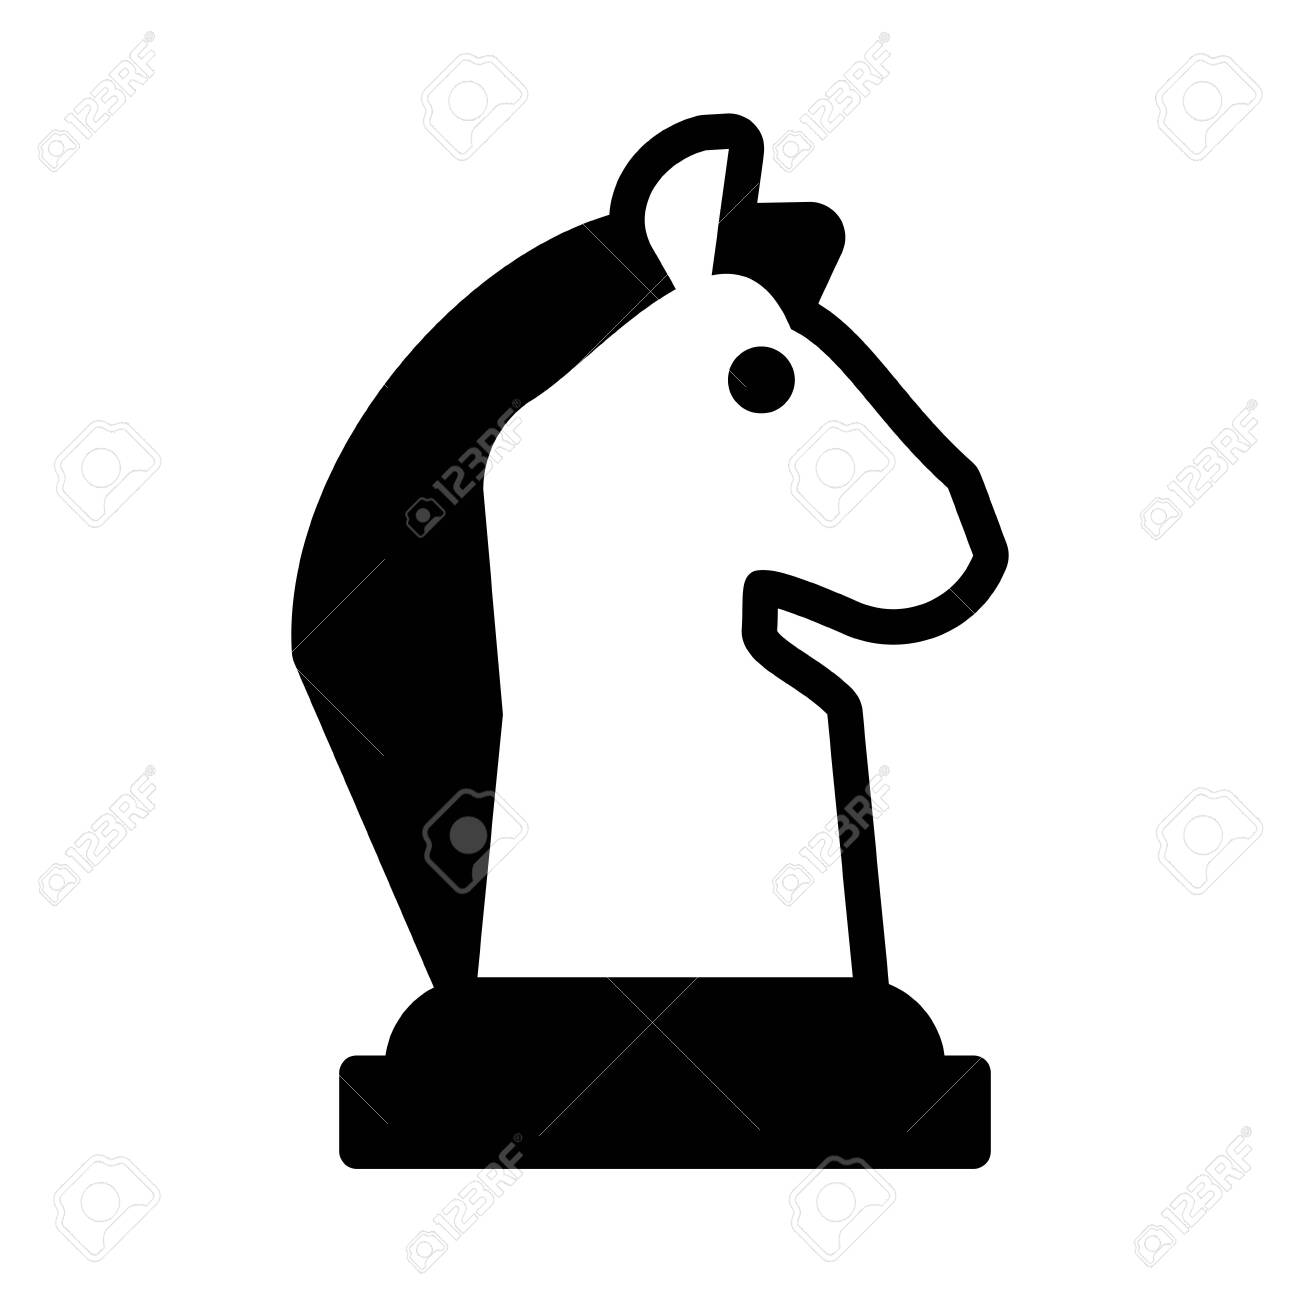 Horse Chess Piece Chess Game On White Background Vector Illustration Design Ilustraciones Vectoriales Clip Art Vectorizado Libre De Derechos Image 143223496